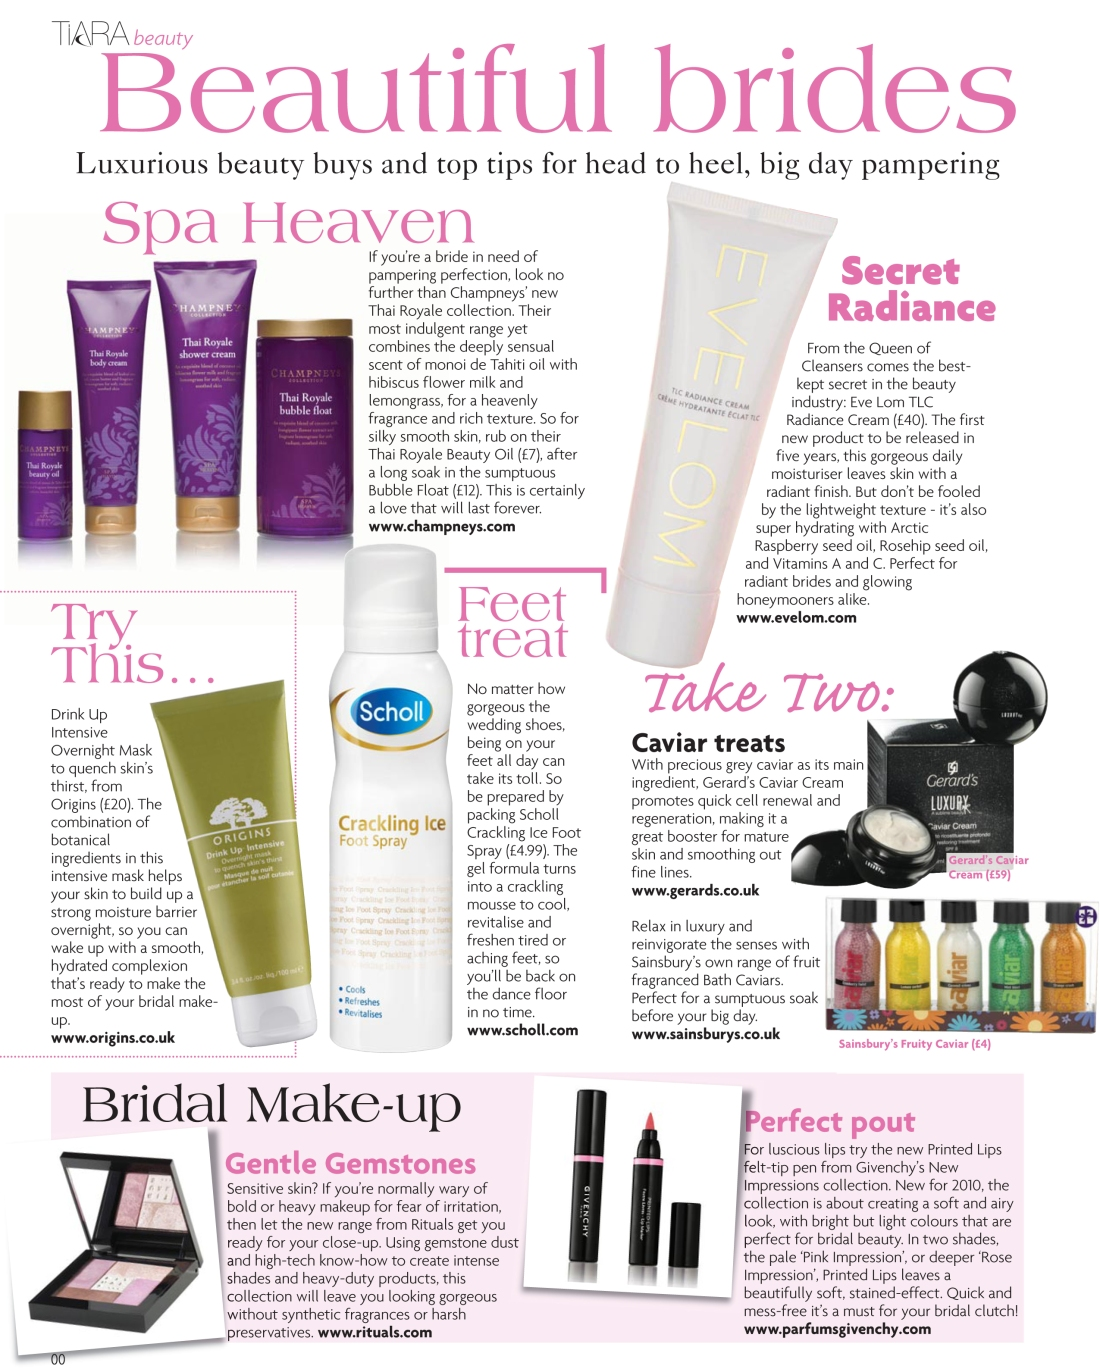 Bridal beauty news spread - Tiara magazine Spring 2010-page 1-Amy Lewis